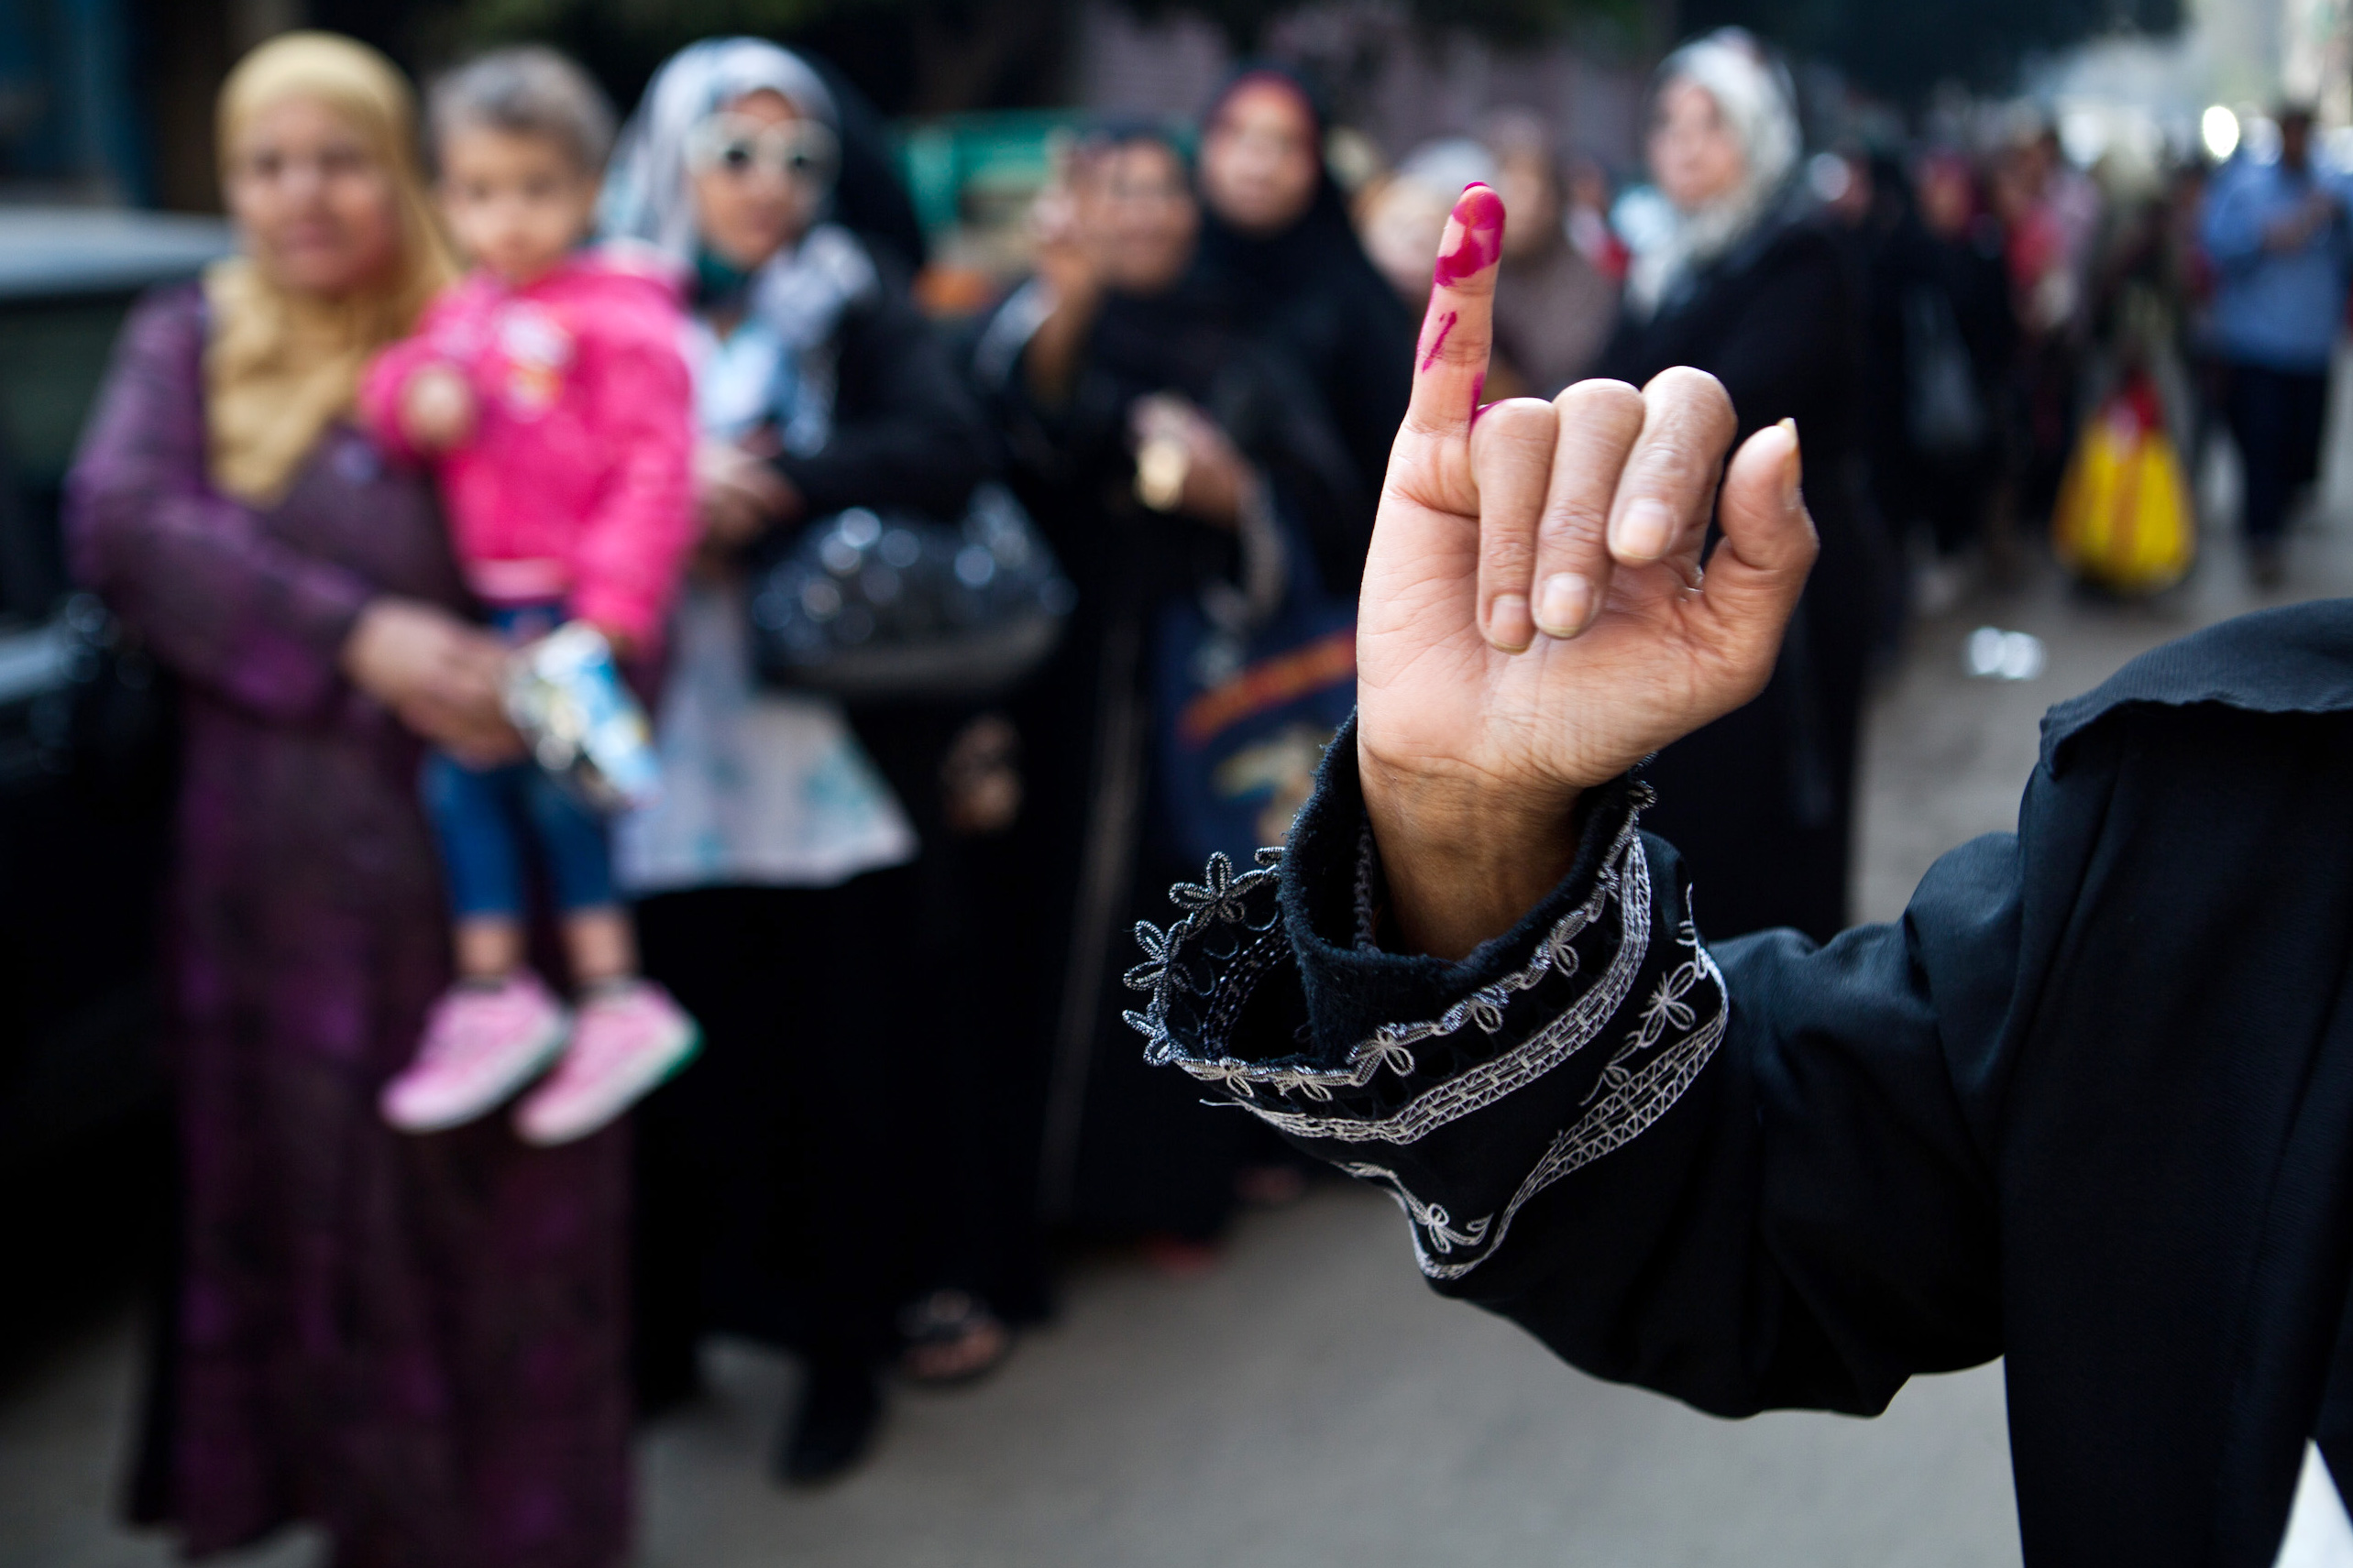 A woman shows her ink-marked finger as she leaves a polling centre after voting on a new constitution on January 14, 2014 in Mounira, a district of Cairo. Egyptians vote on a new constitution amid high security in a referendum likely to prompt a presidential bid by the army chief who overthrew Islamist president Mohamed Morsi.     (AFP PHOTO / VIRGINIE NGUYEN HOANG)